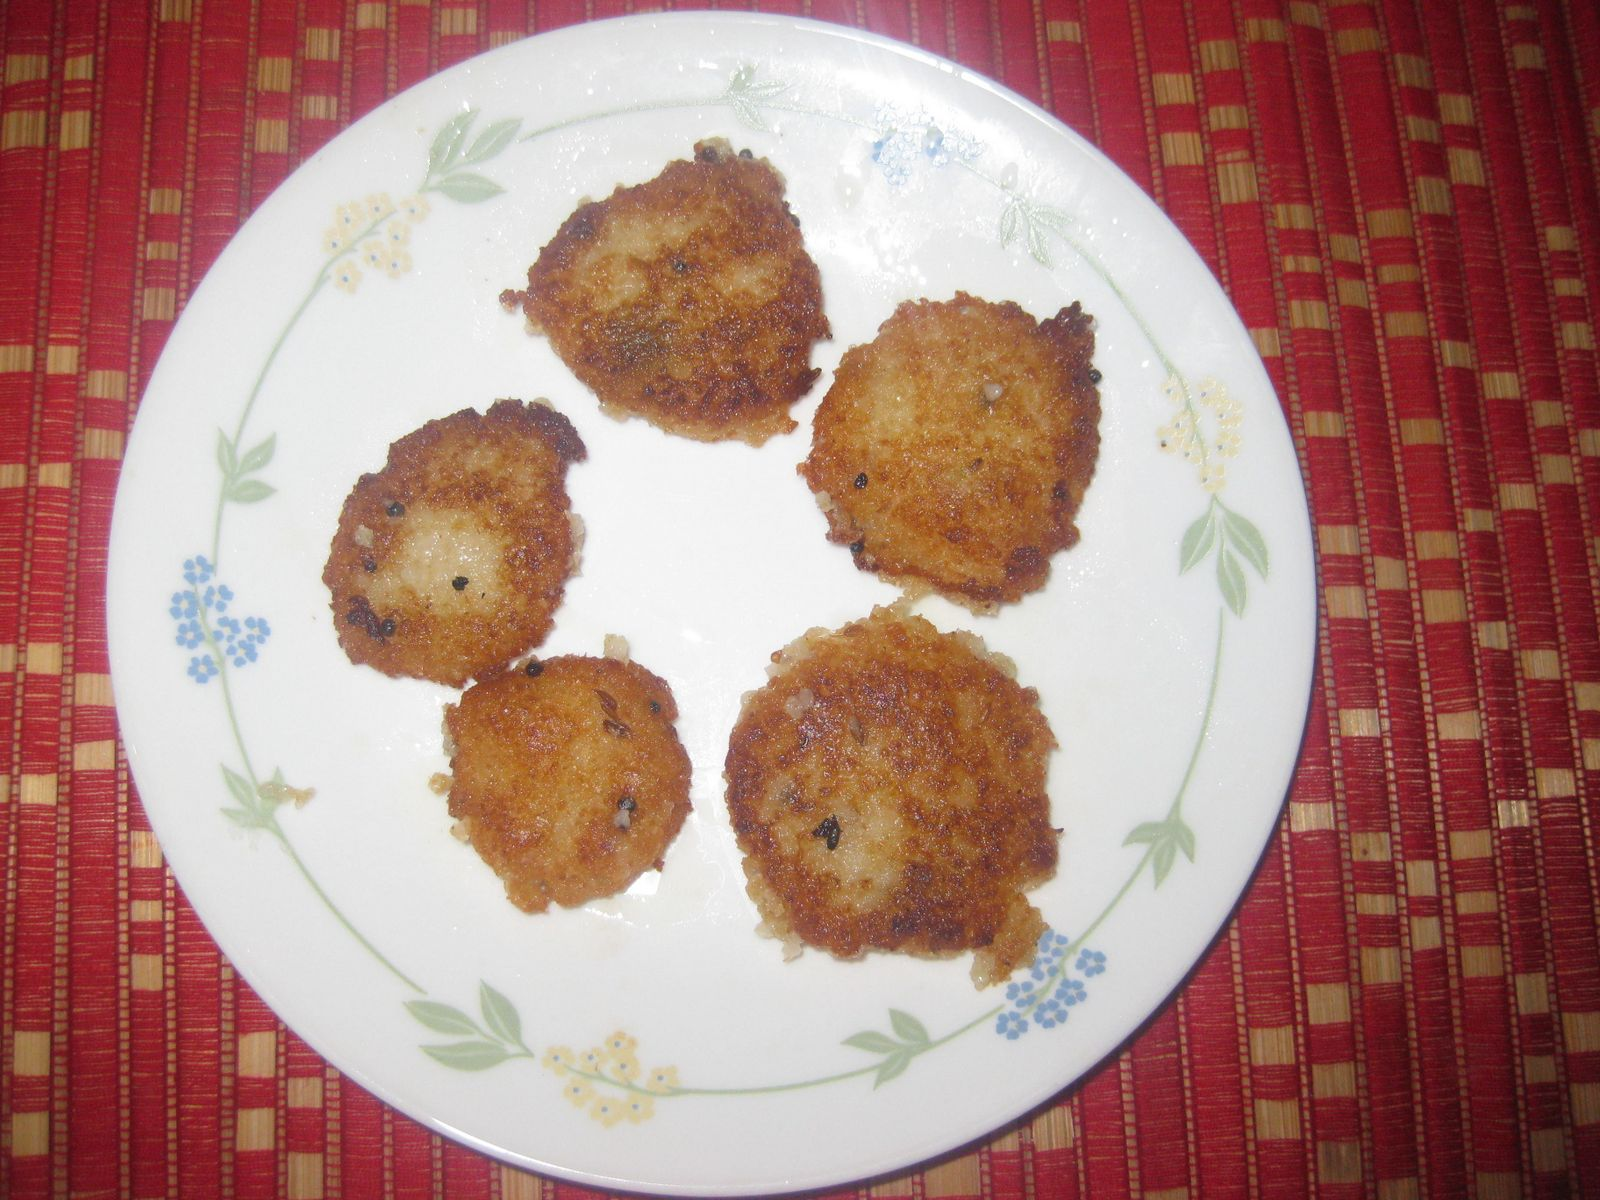 Delicious Desi Dishes: Wheat Upma Vadas